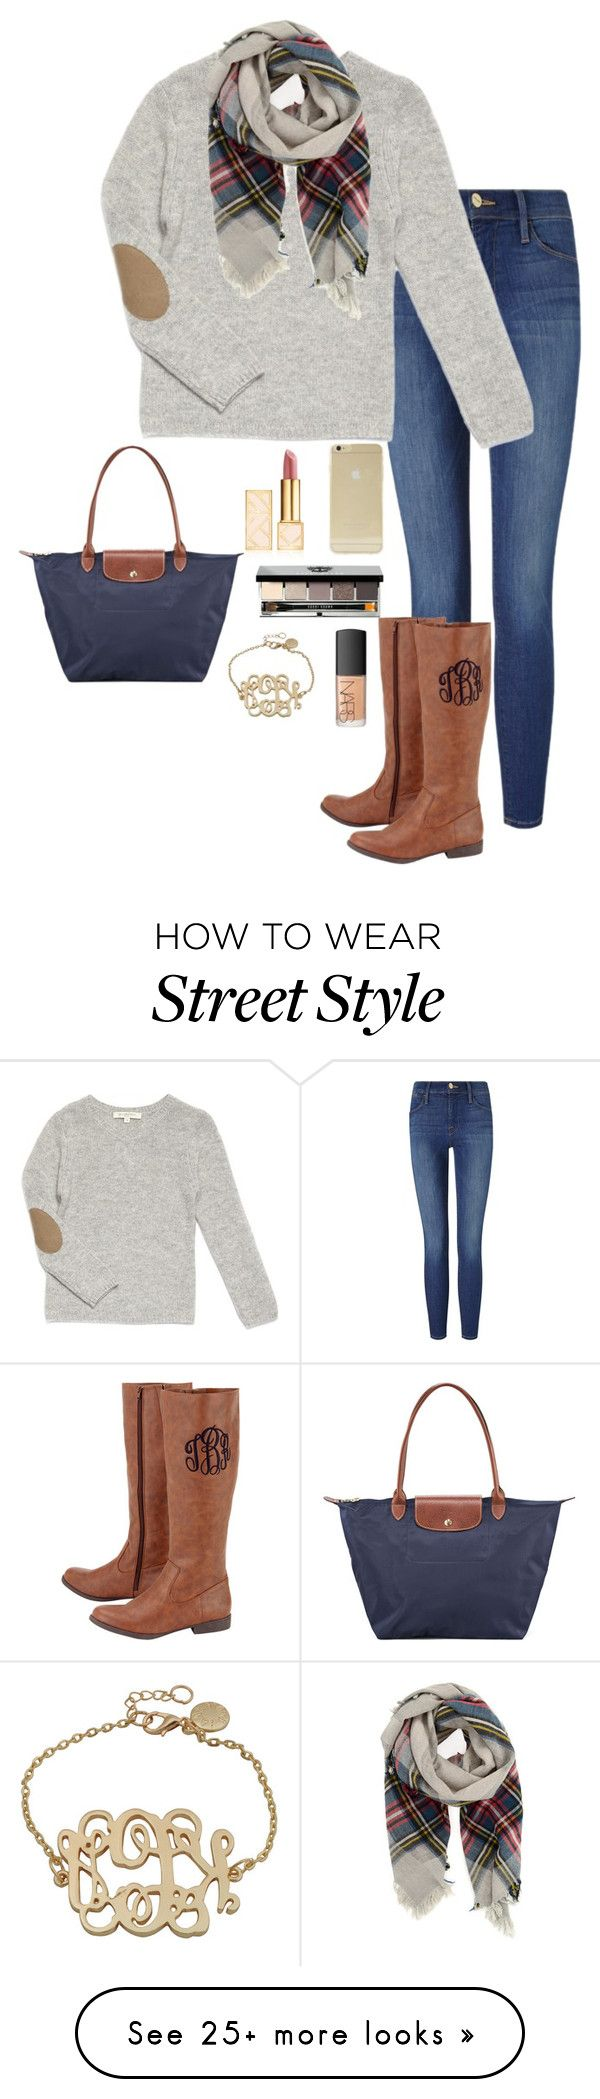 """Almost There!! READ D"" by elizabeth-southern-prep on Polyvore featuring Frame Denim, Forte Forte, Longchamp, Sonix, Tory Burch, Bobbi Brown Cosmetics and NARS Cosmetics"